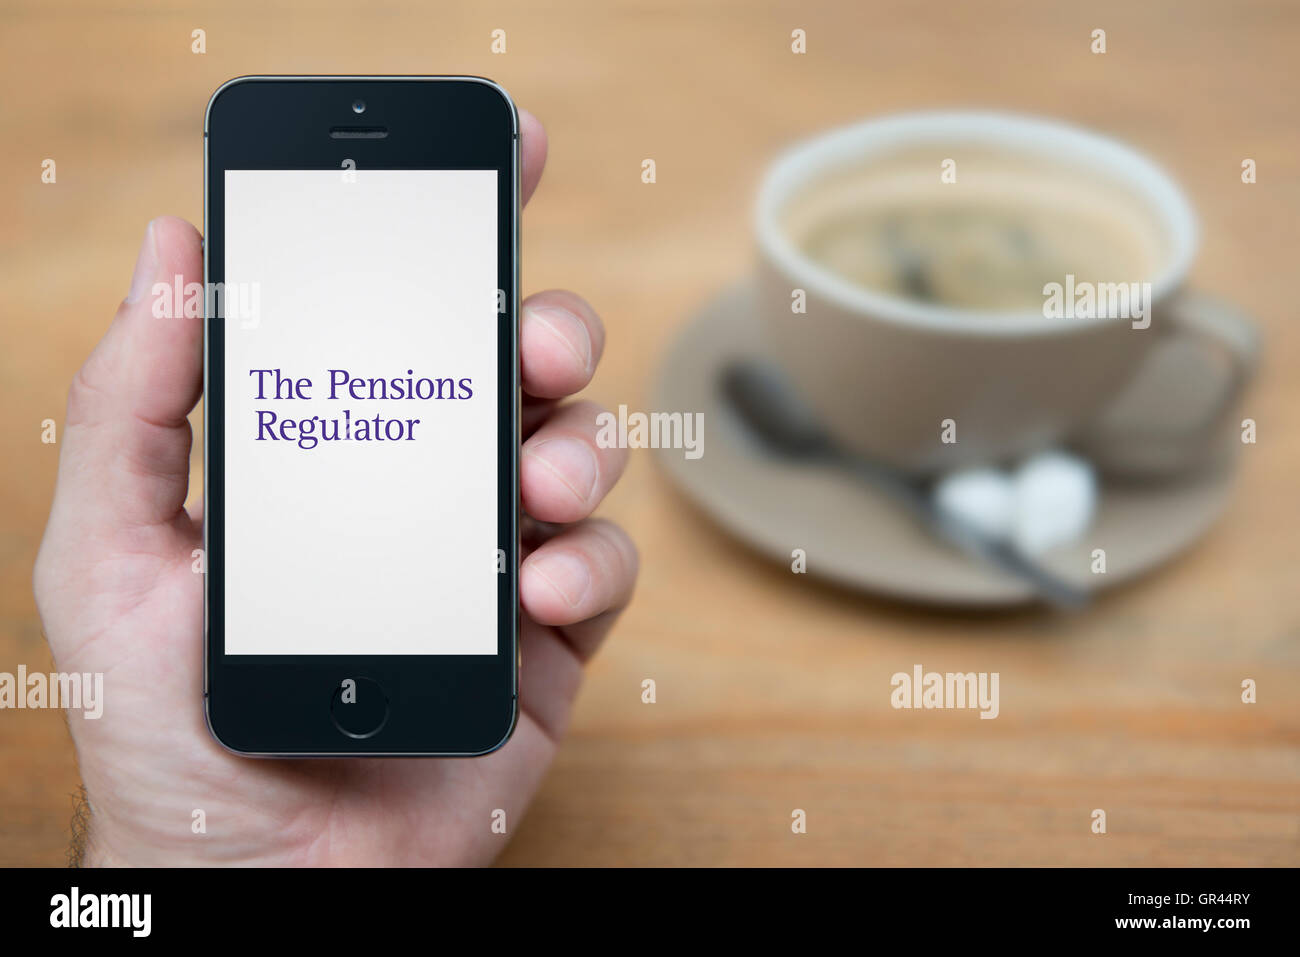 A man looks at his iPhone which displays the The Pensions Regulator logo (Editorial use only). - Stock Image